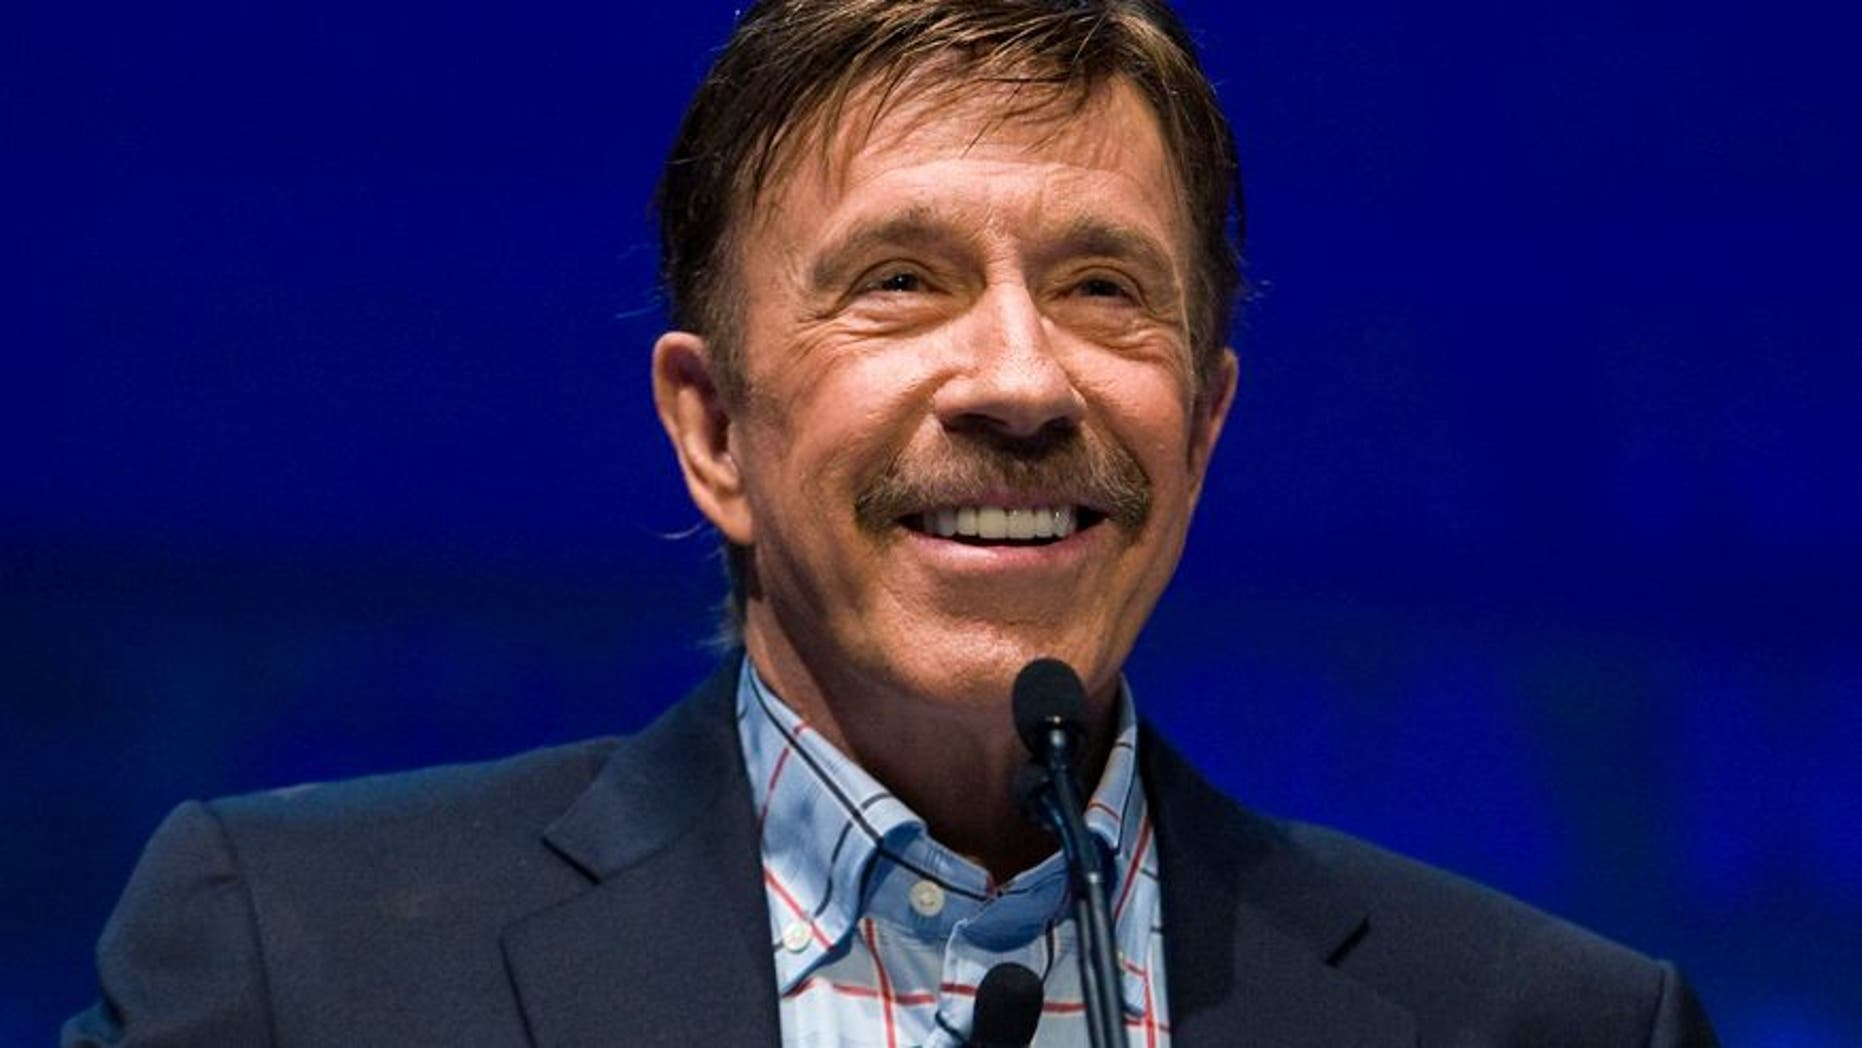 Actor Chuck Norris speaks during the National Rifle Association's 139th annual meeting in Charlotte, North Carolina May 14, 2010.